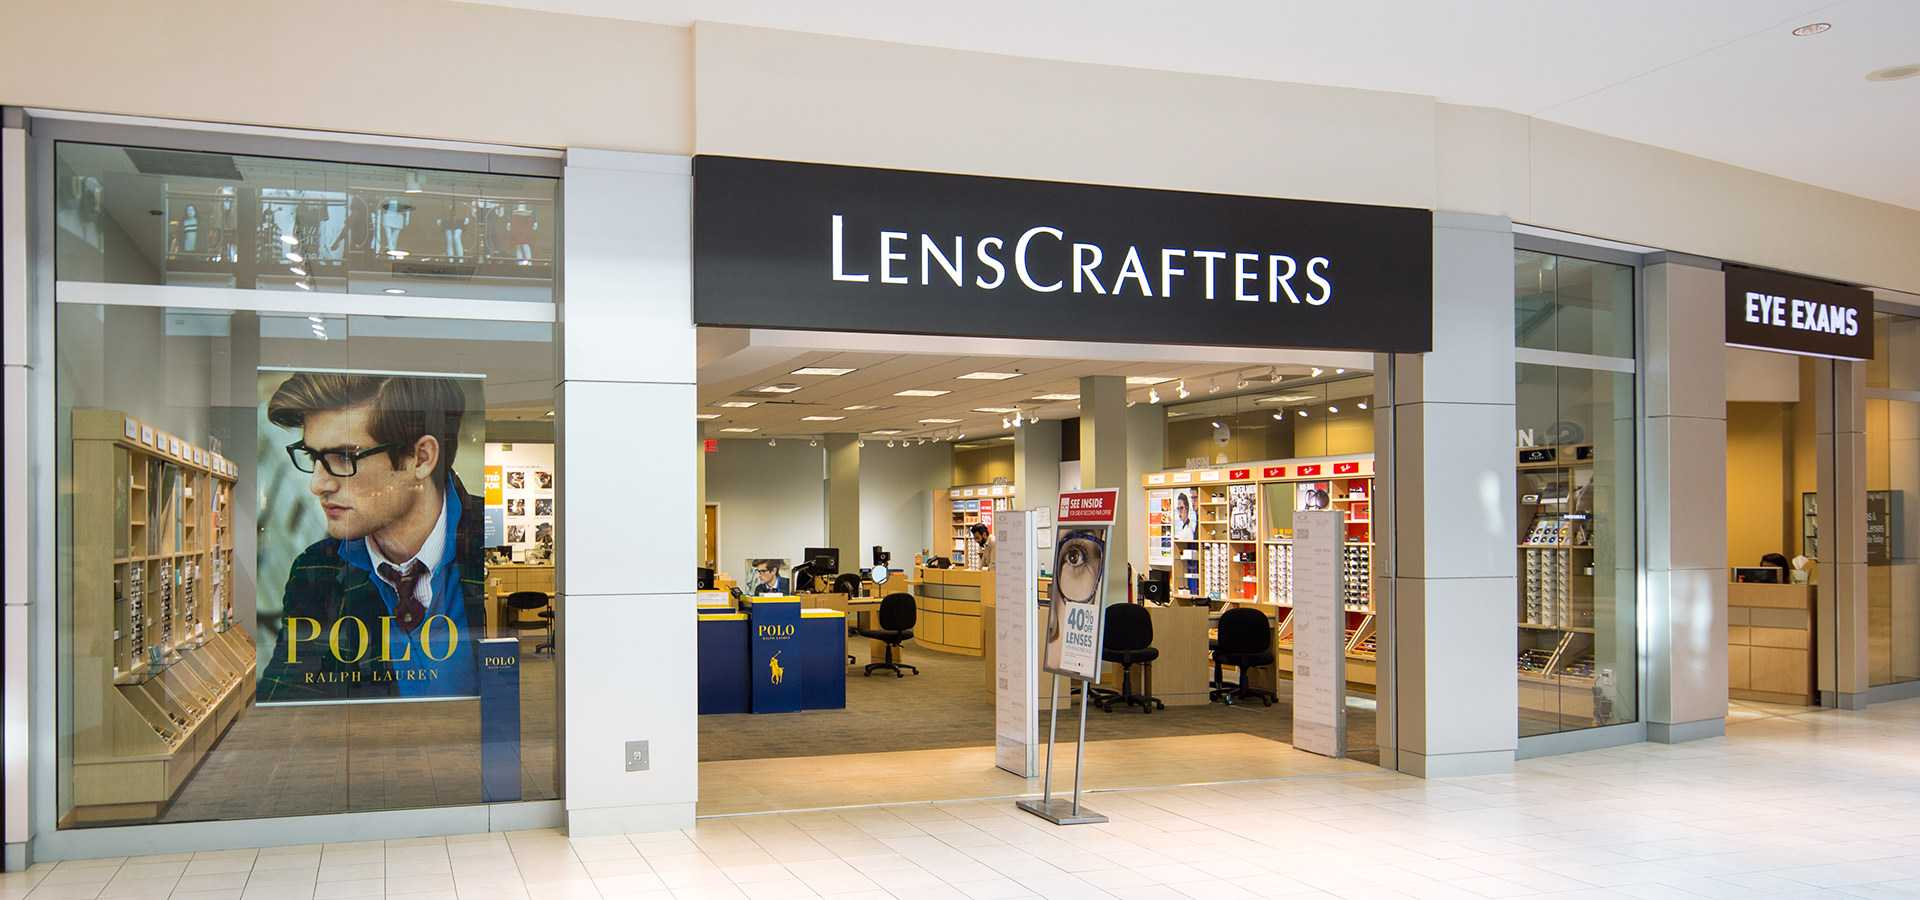 lenscrafters locations, lenscrafters glasses